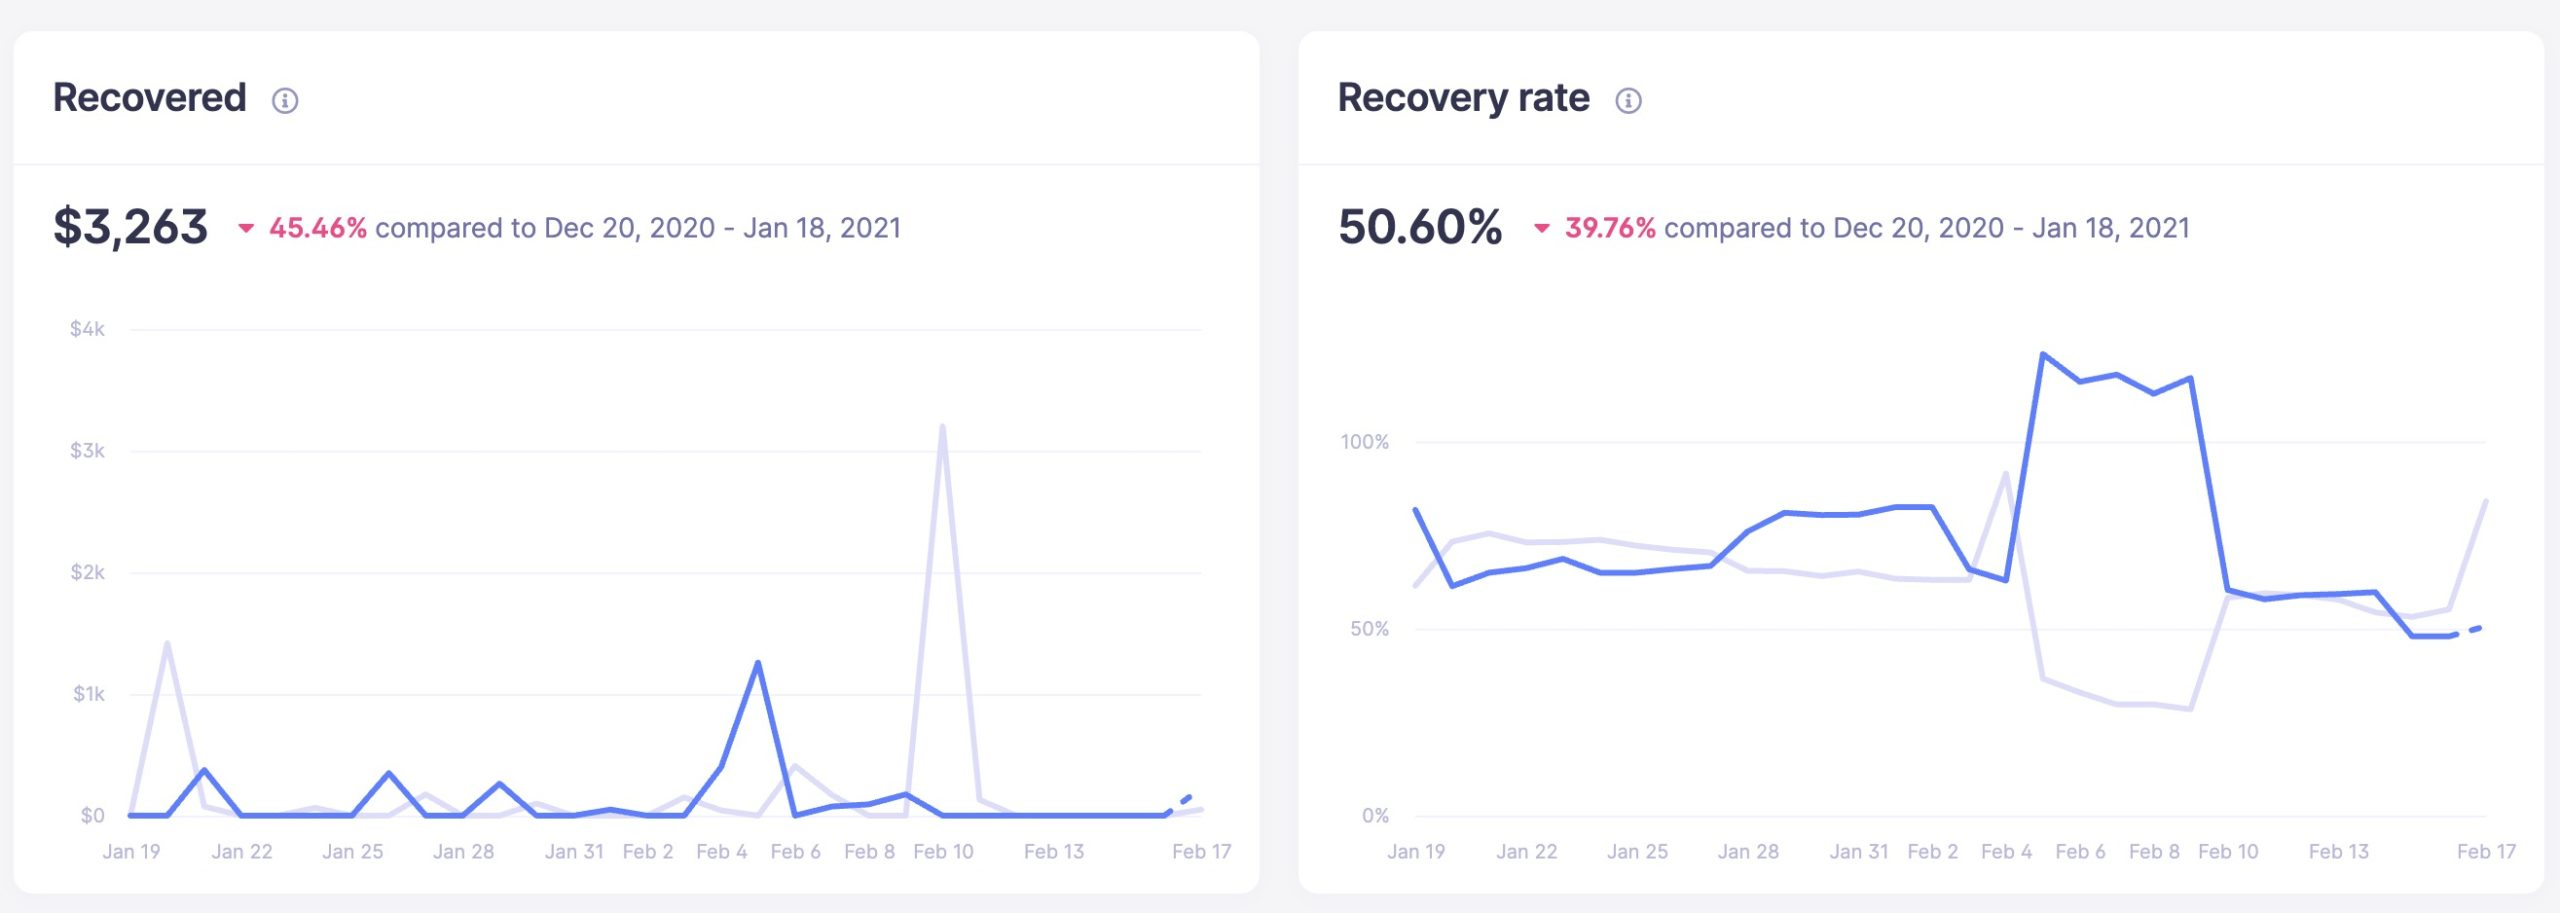 recovery amount and recovery rate